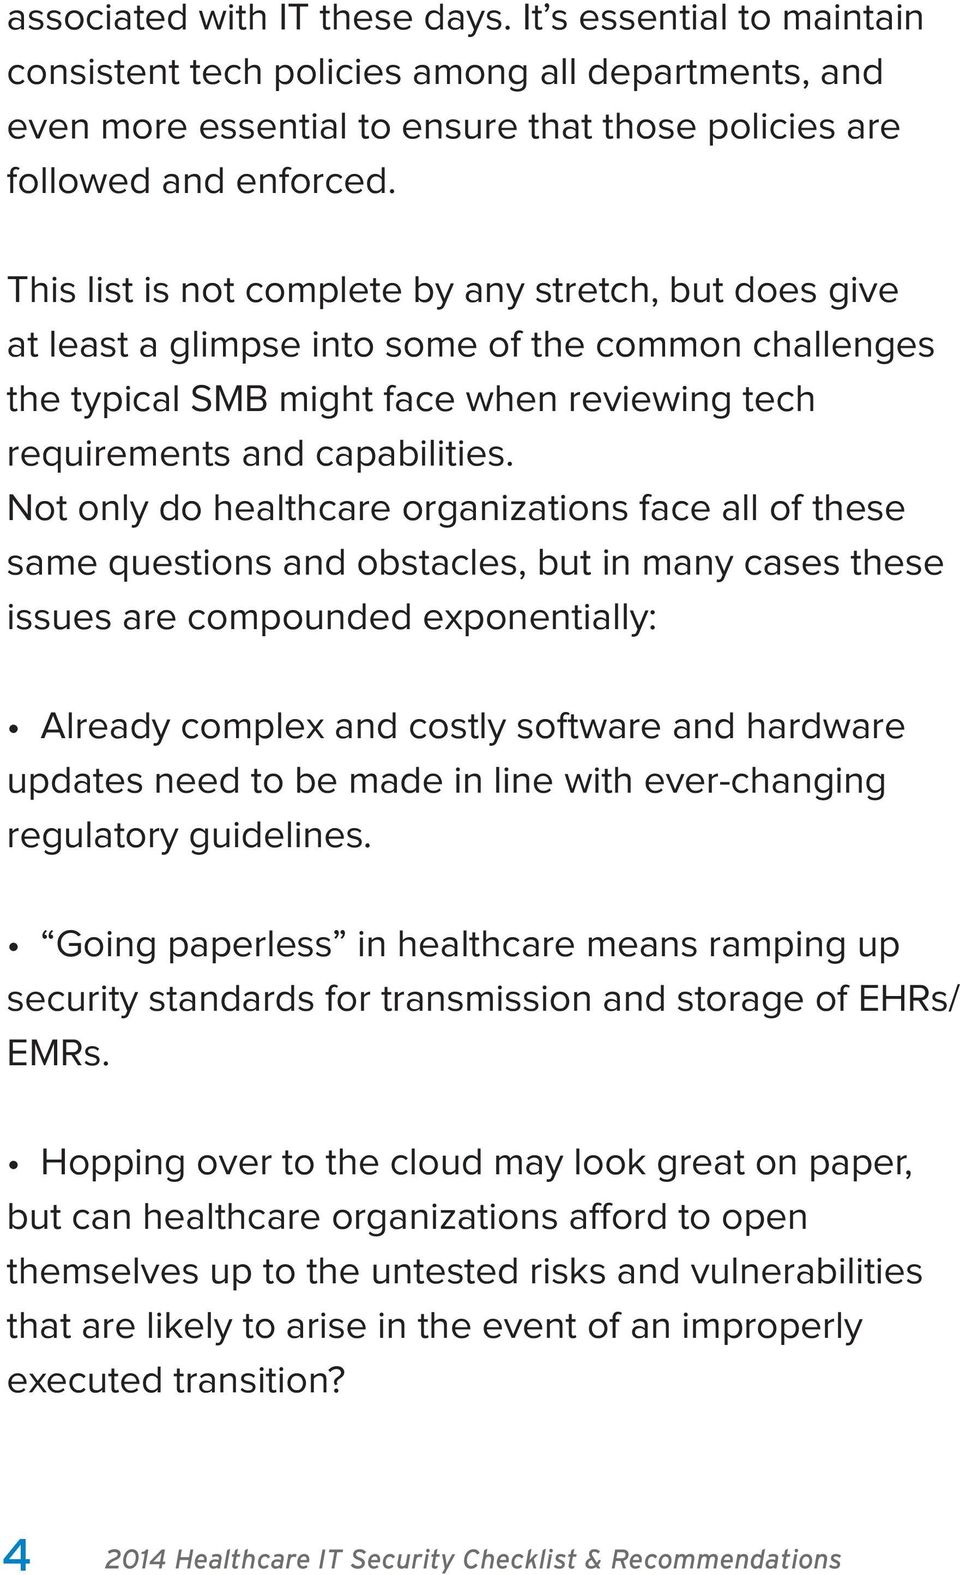 Not only do healthcare organizations face all of these same questions and obstacles, but in many cases these issues are compounded exponentially: Already complex and costly software and hardware